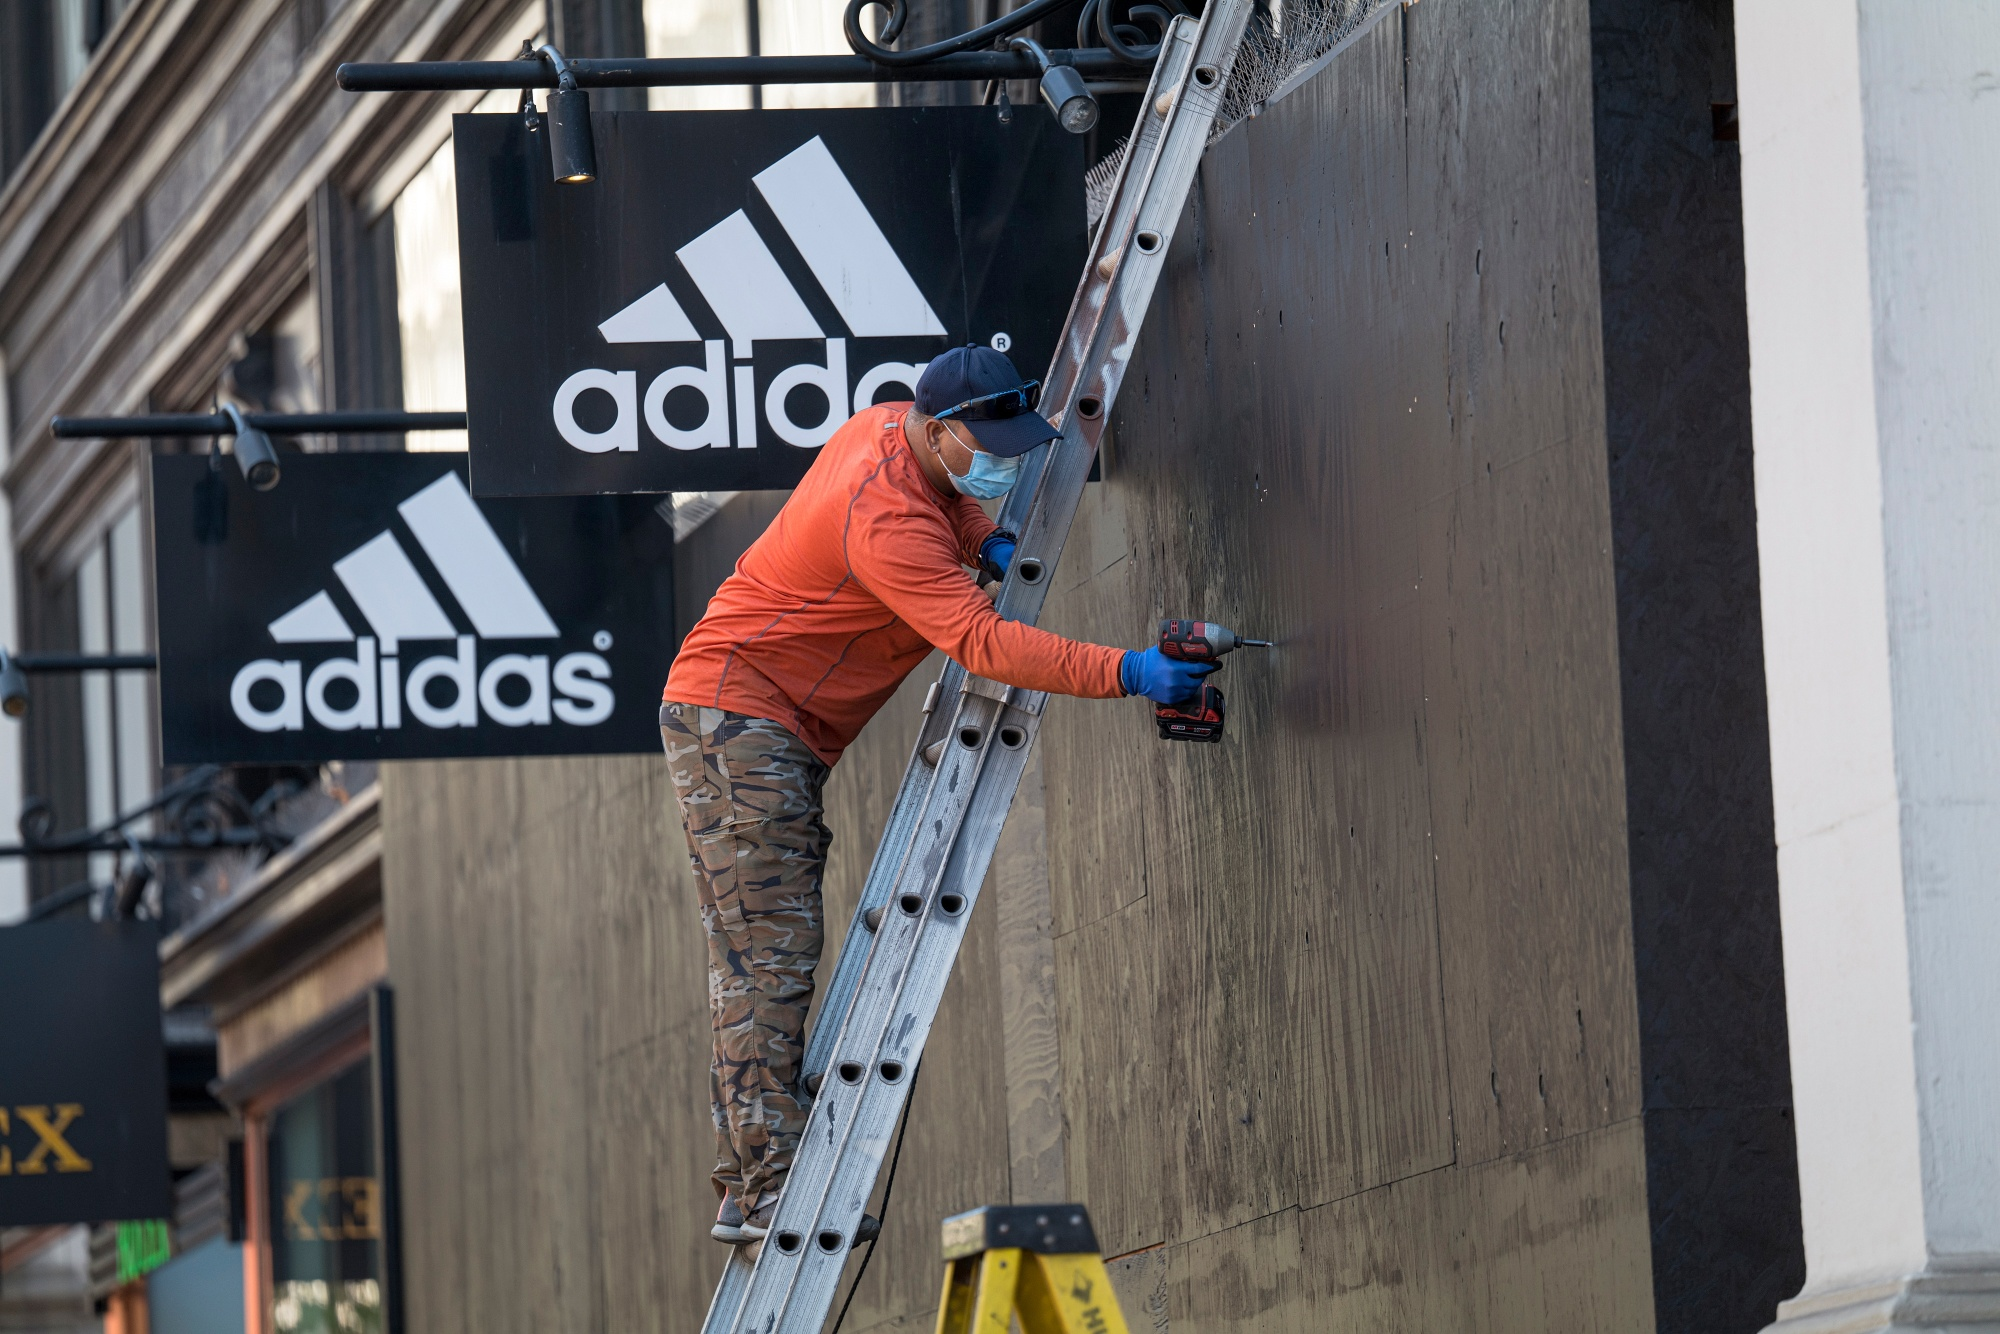 Adidas E Commerce Boom Helps Out As Store Traffic Picks Up Bloomberg